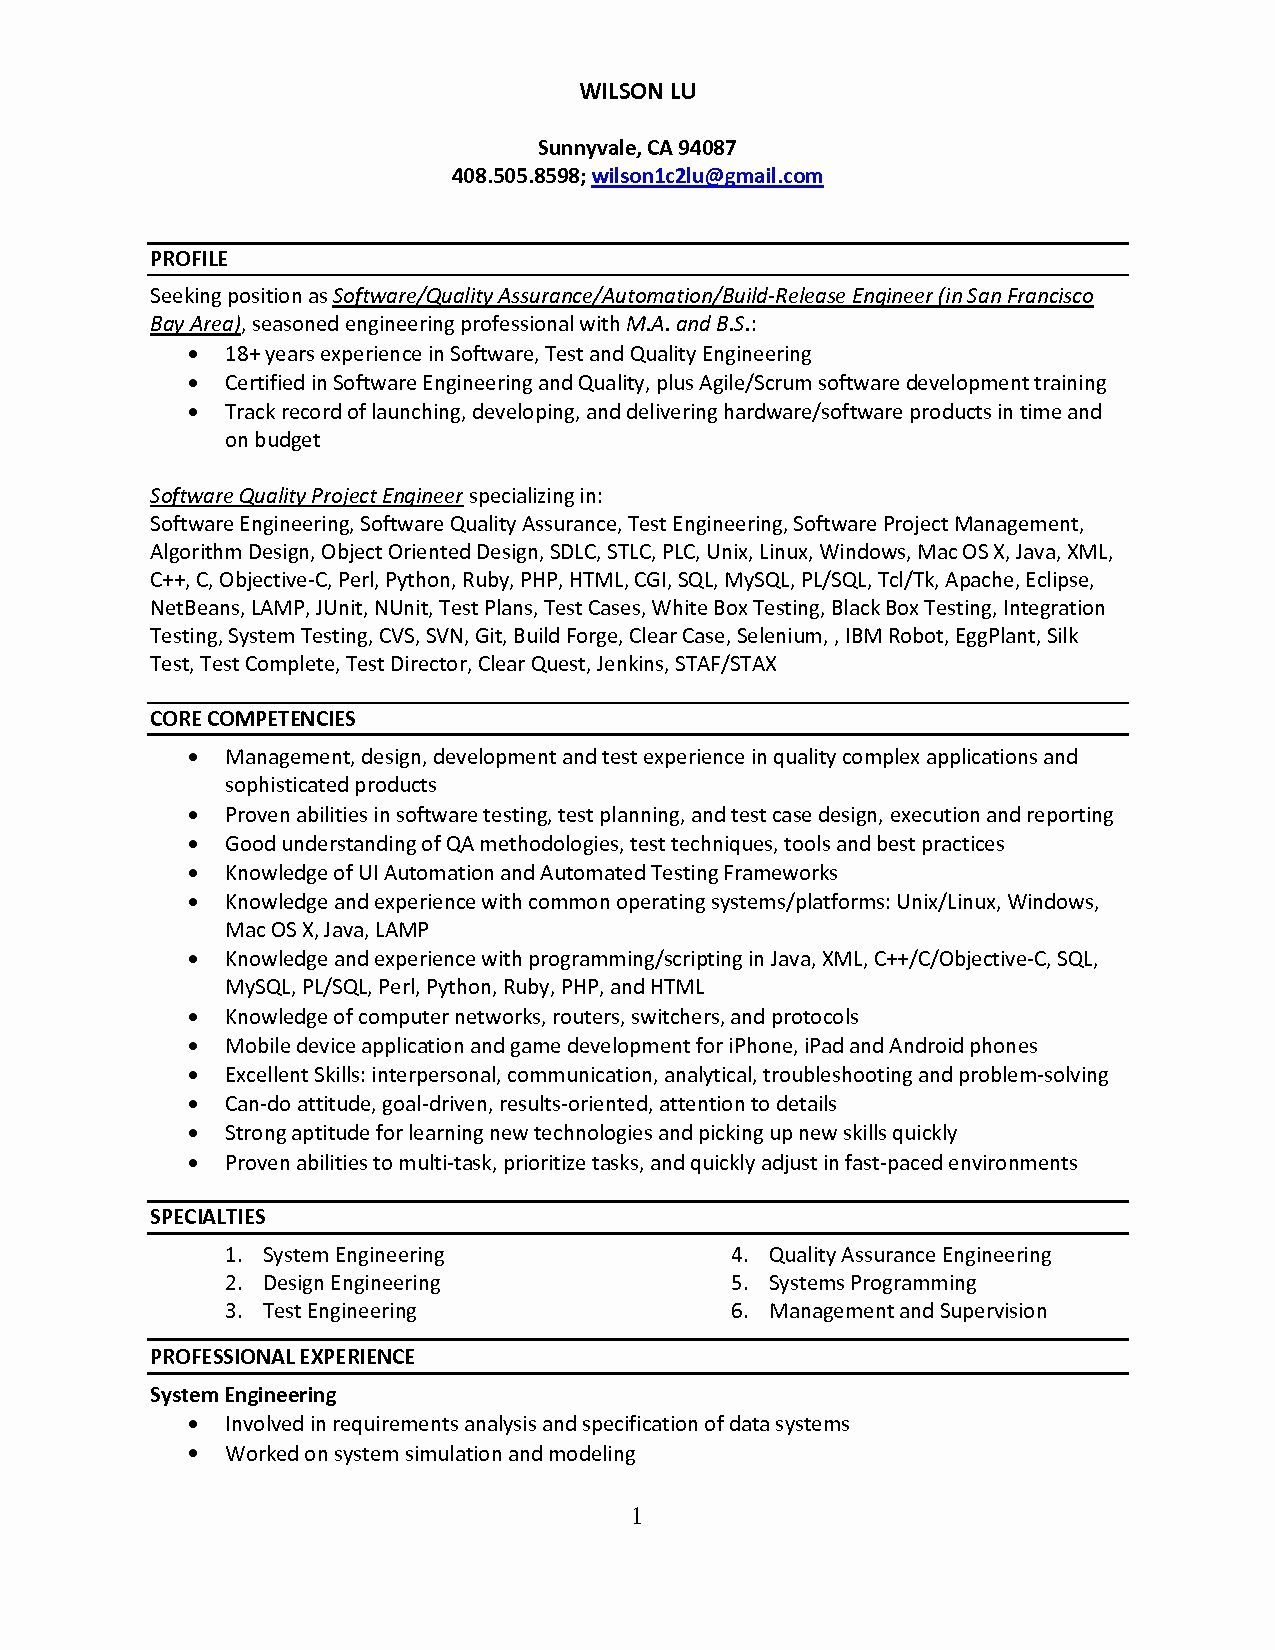 Quality Engineer Resume 12 Best Of Resume Format For 1 Year Experienced Java Developer .